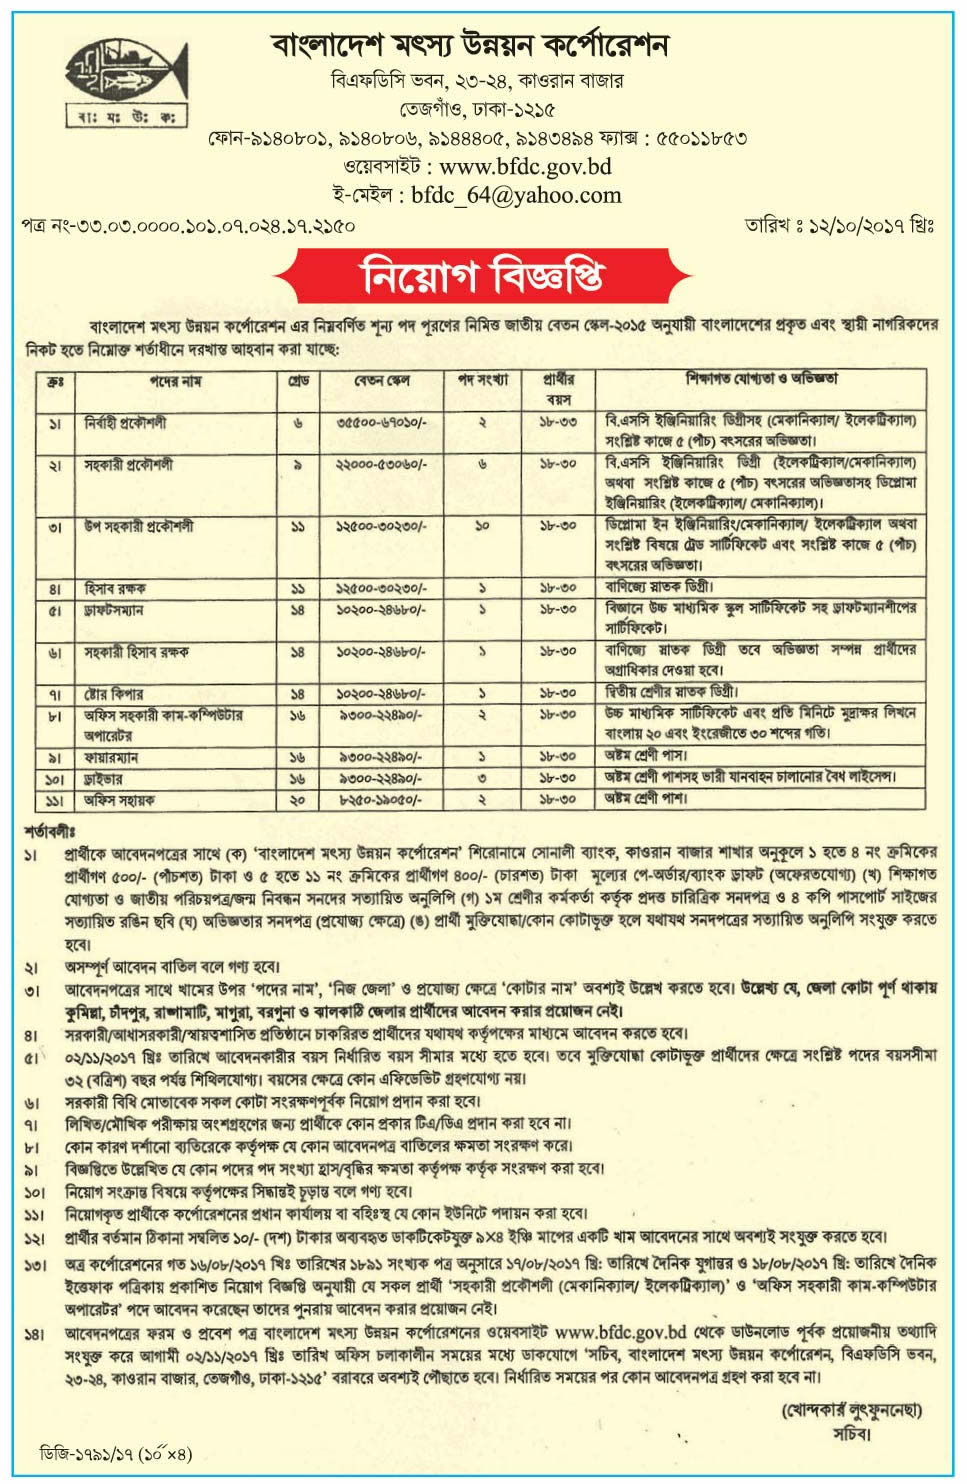 Bangladesh Fisheries Development Corporation Job Opportunity 2017